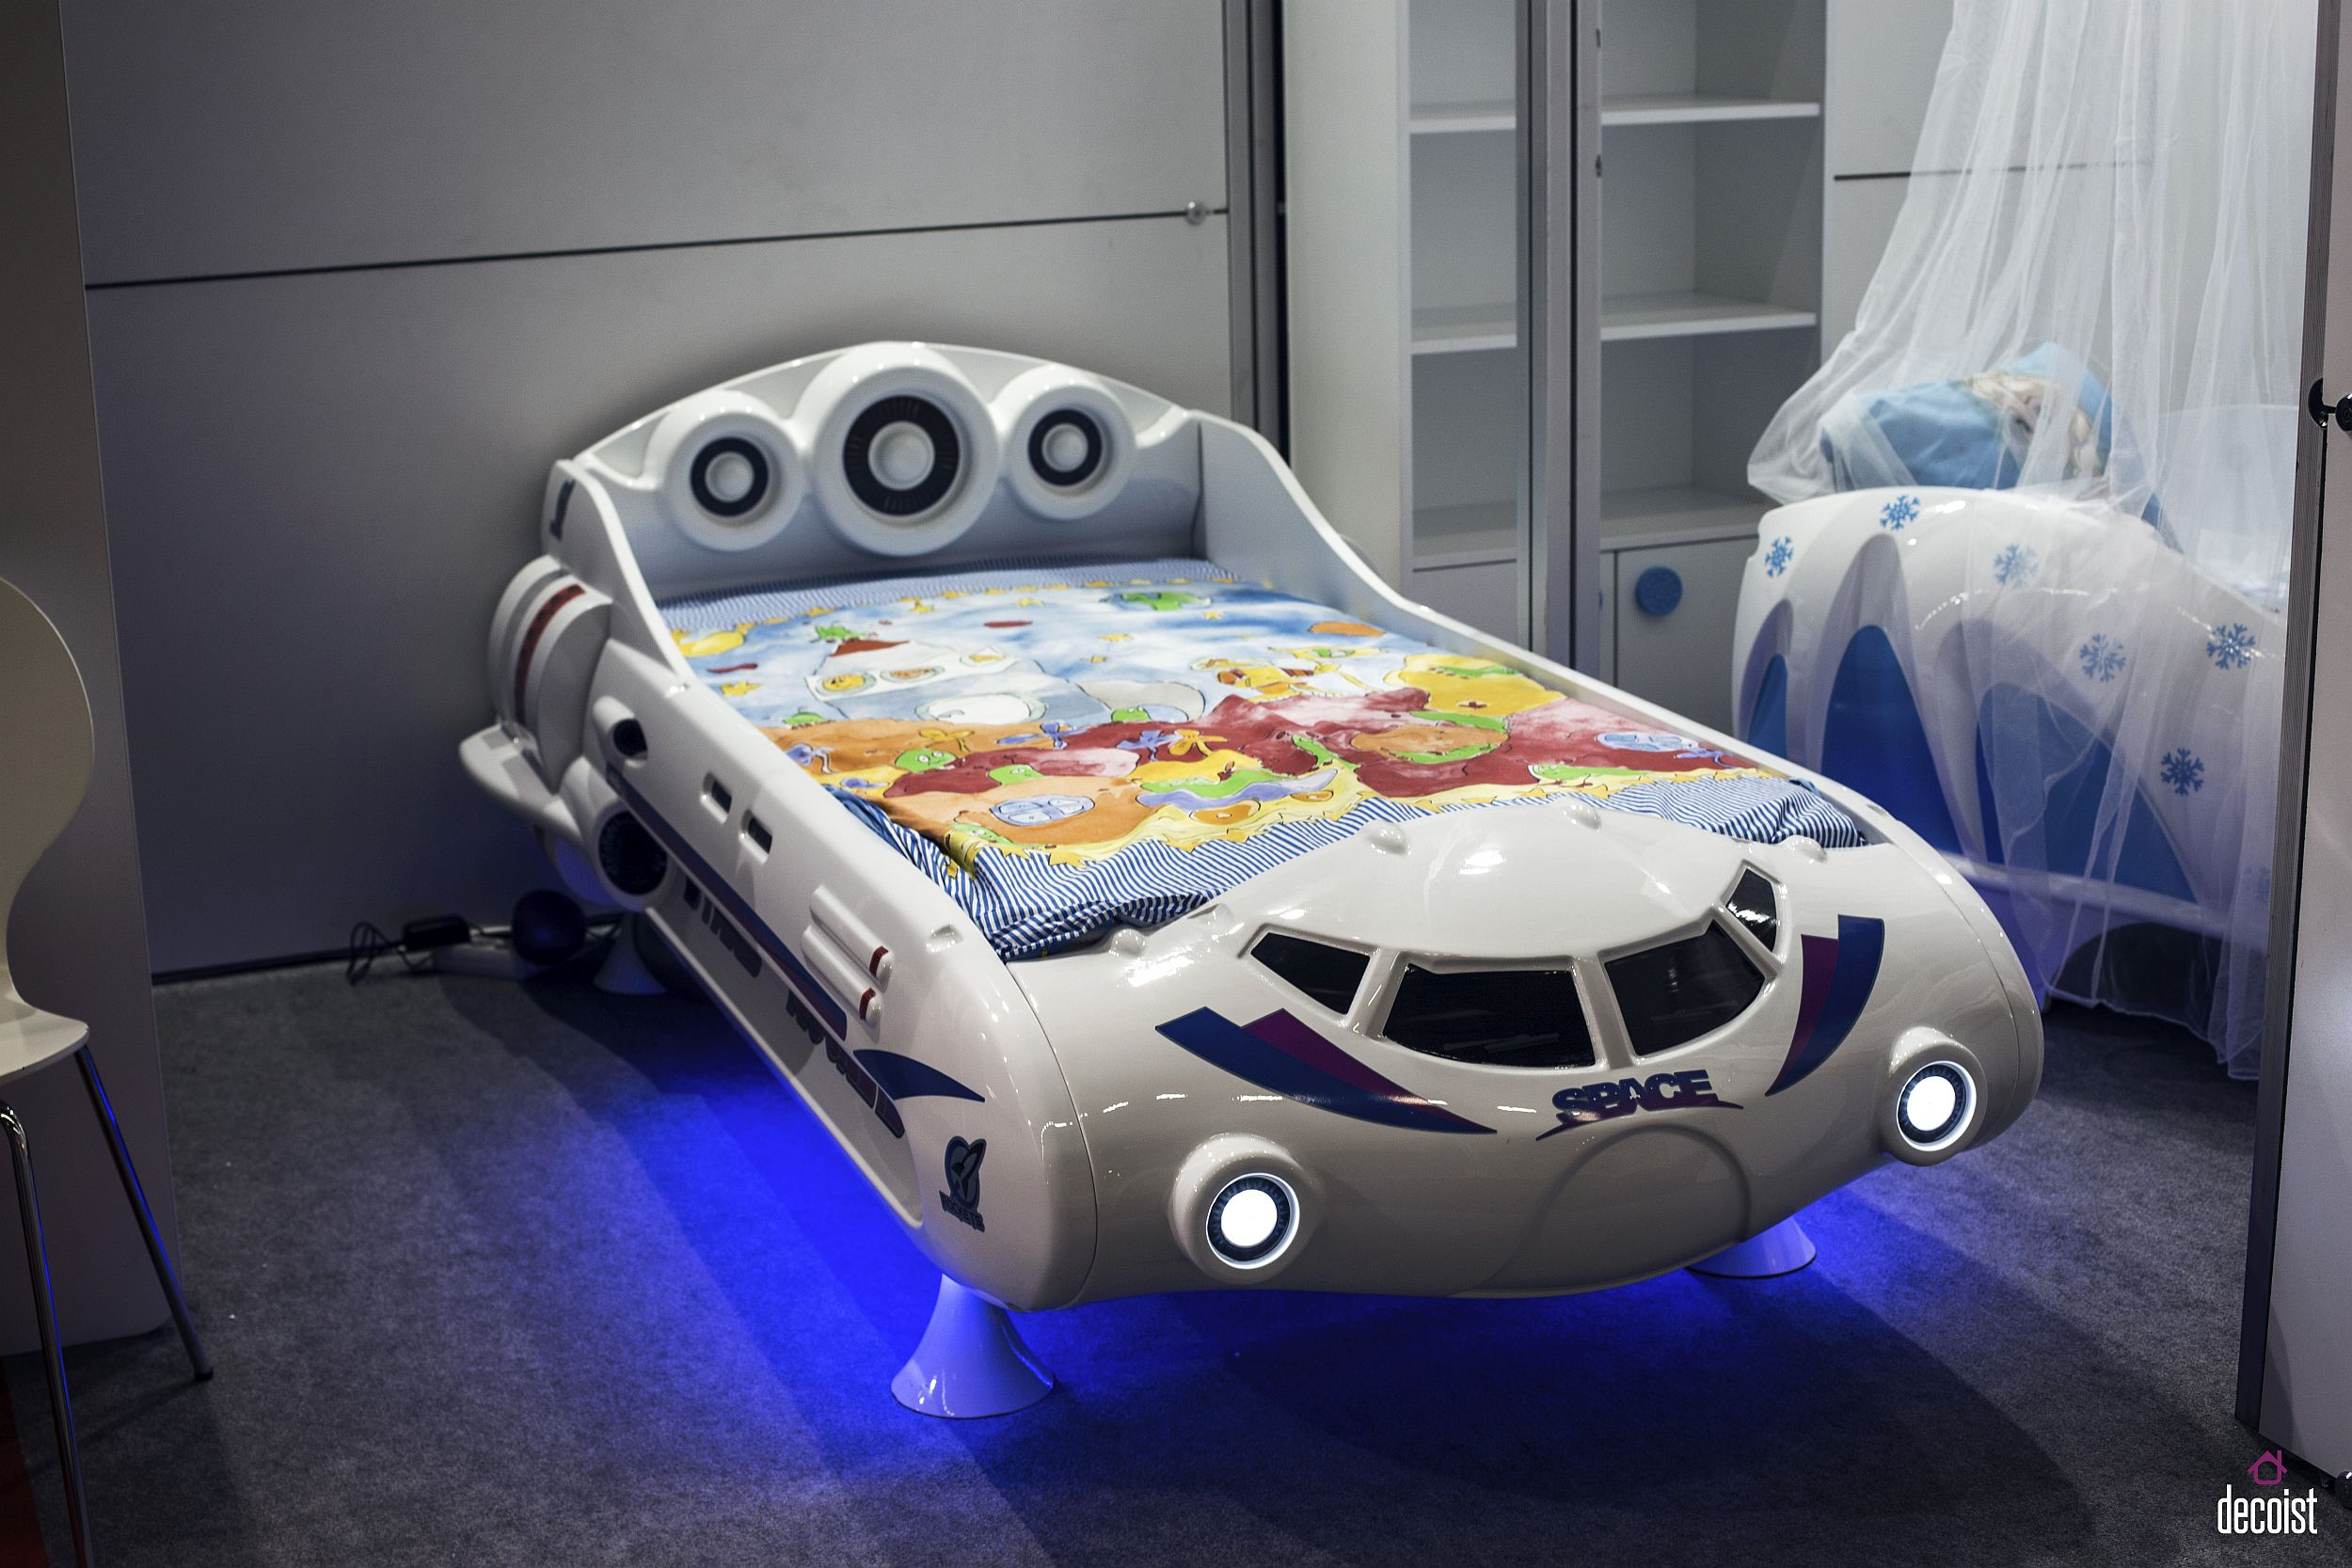 Fun Space Car Bed design with built in lighting and super cool bedding for you little one 55 Gorgeous Kids' Bedroom Finds That Amaze and Delight